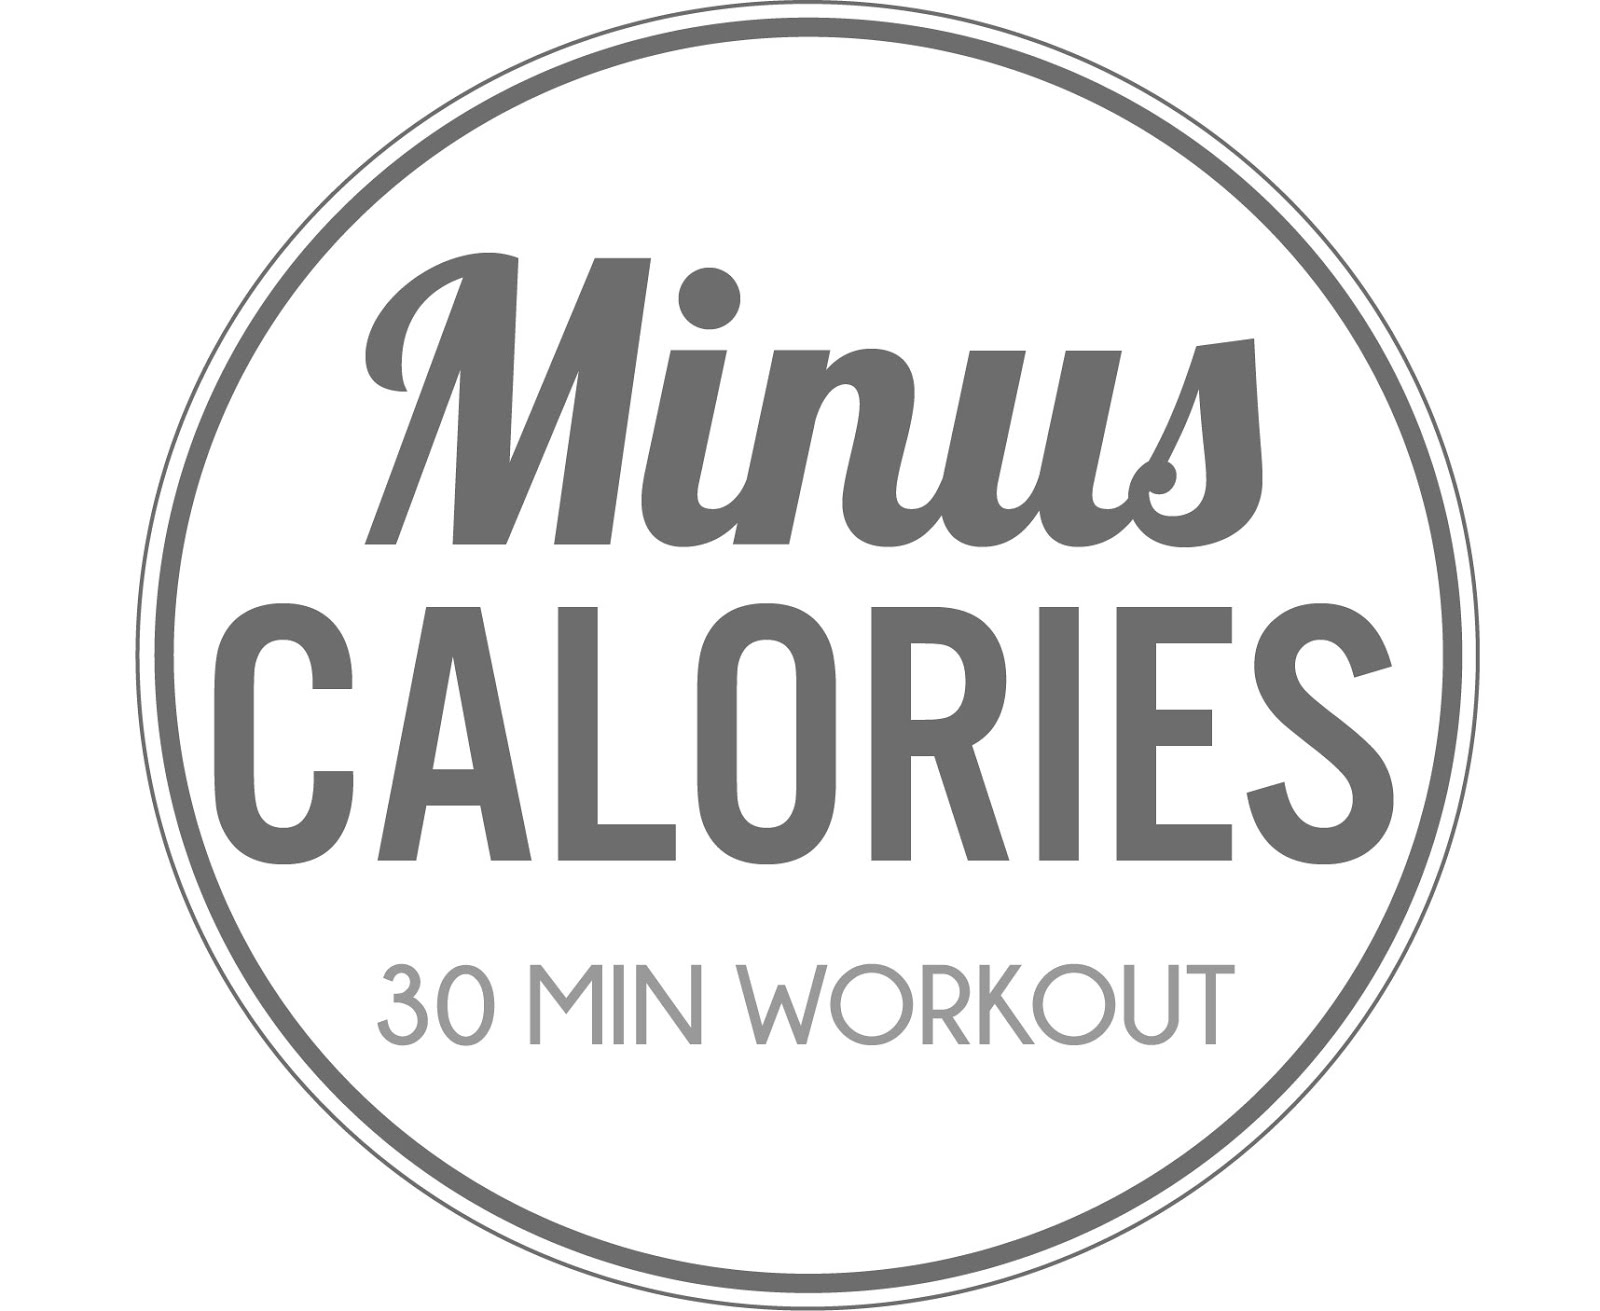 Minus Calories Workout